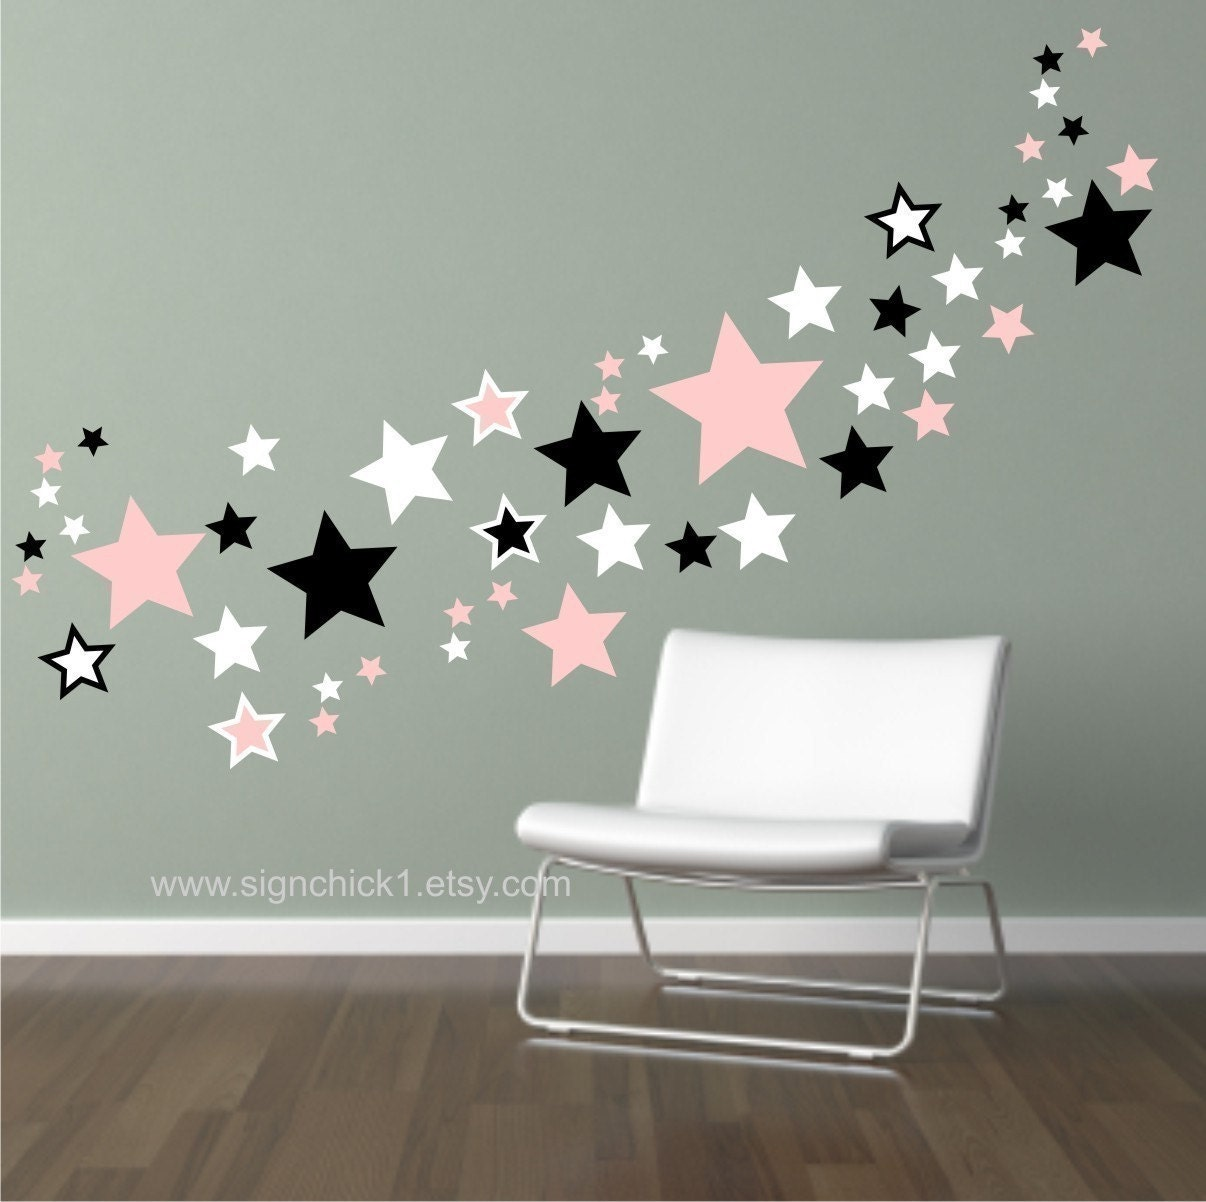 Stars Wall Decals Dorm Room Decor set of 150 by  ~ 170956_Etsy Dorm Room Ideas